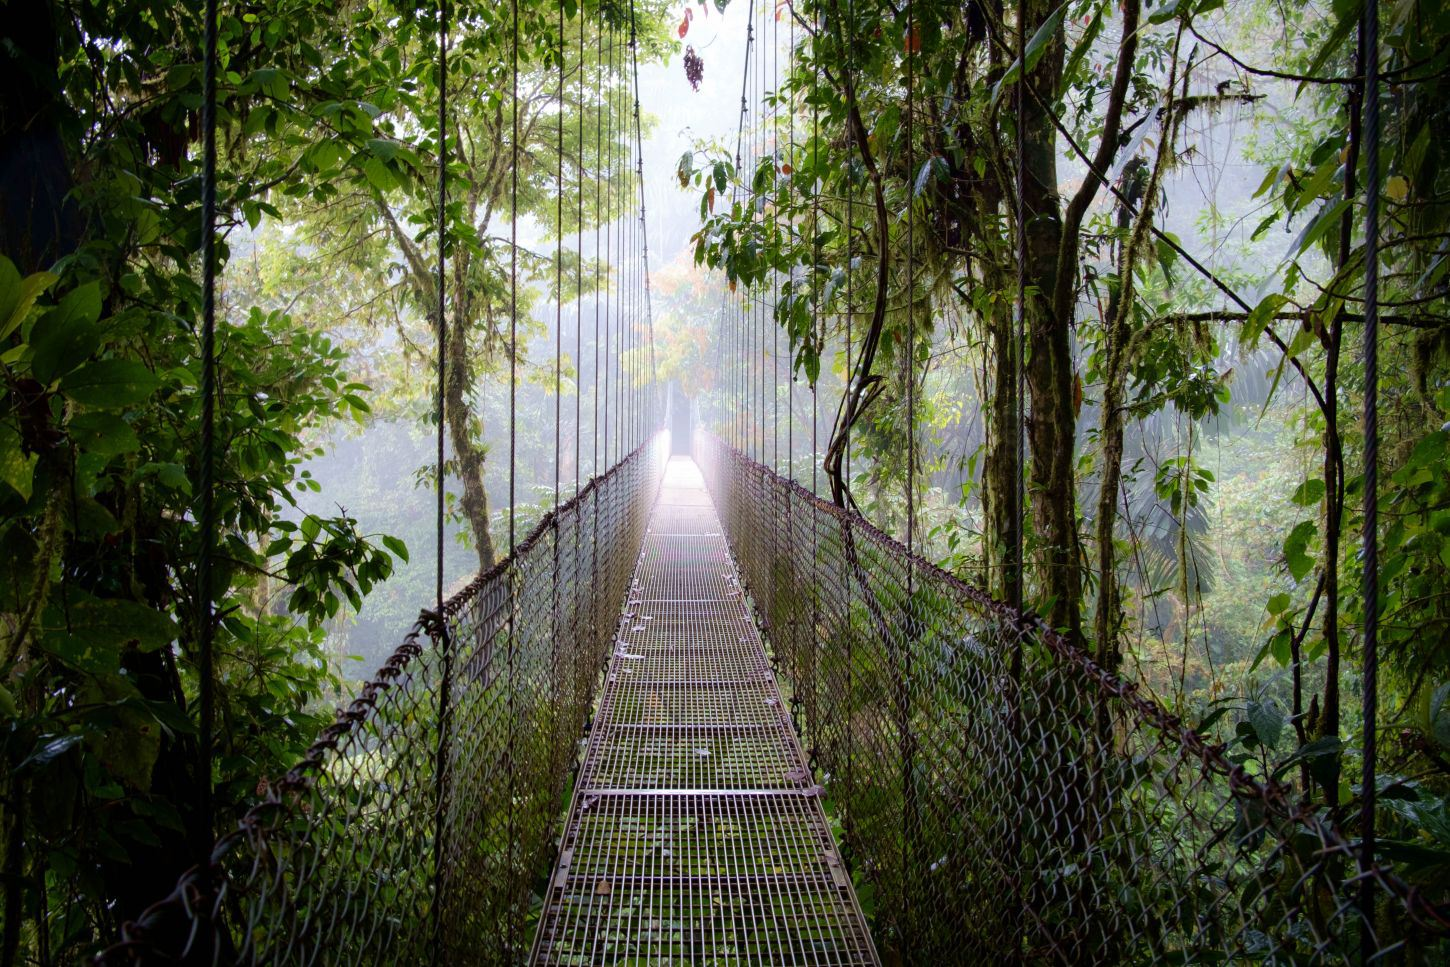 Arenal-Hanging-Bridges-Tour-Operators-Costa-Rica-01